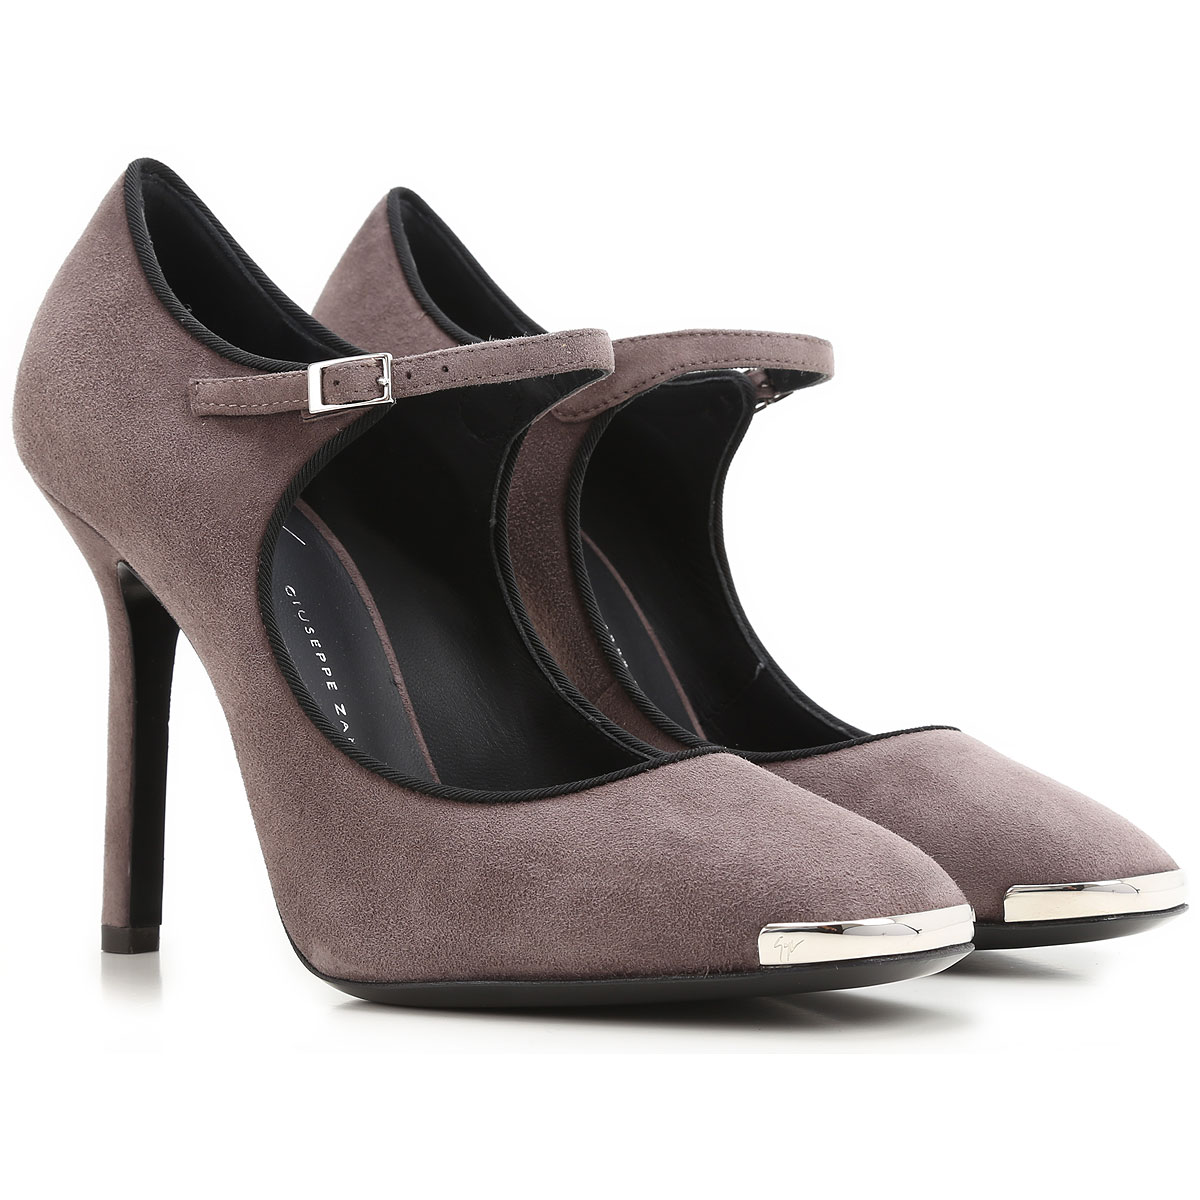 Luxury These Women May Like To Wear Flats  Lady Gaga Was Born To Dance In Bespoke Giuseppe Zanotti Booties With Lady Gaga We Did A Fantastic Shoe That Was Over 19cm I Had To Ask Her, Please Dont Dance I